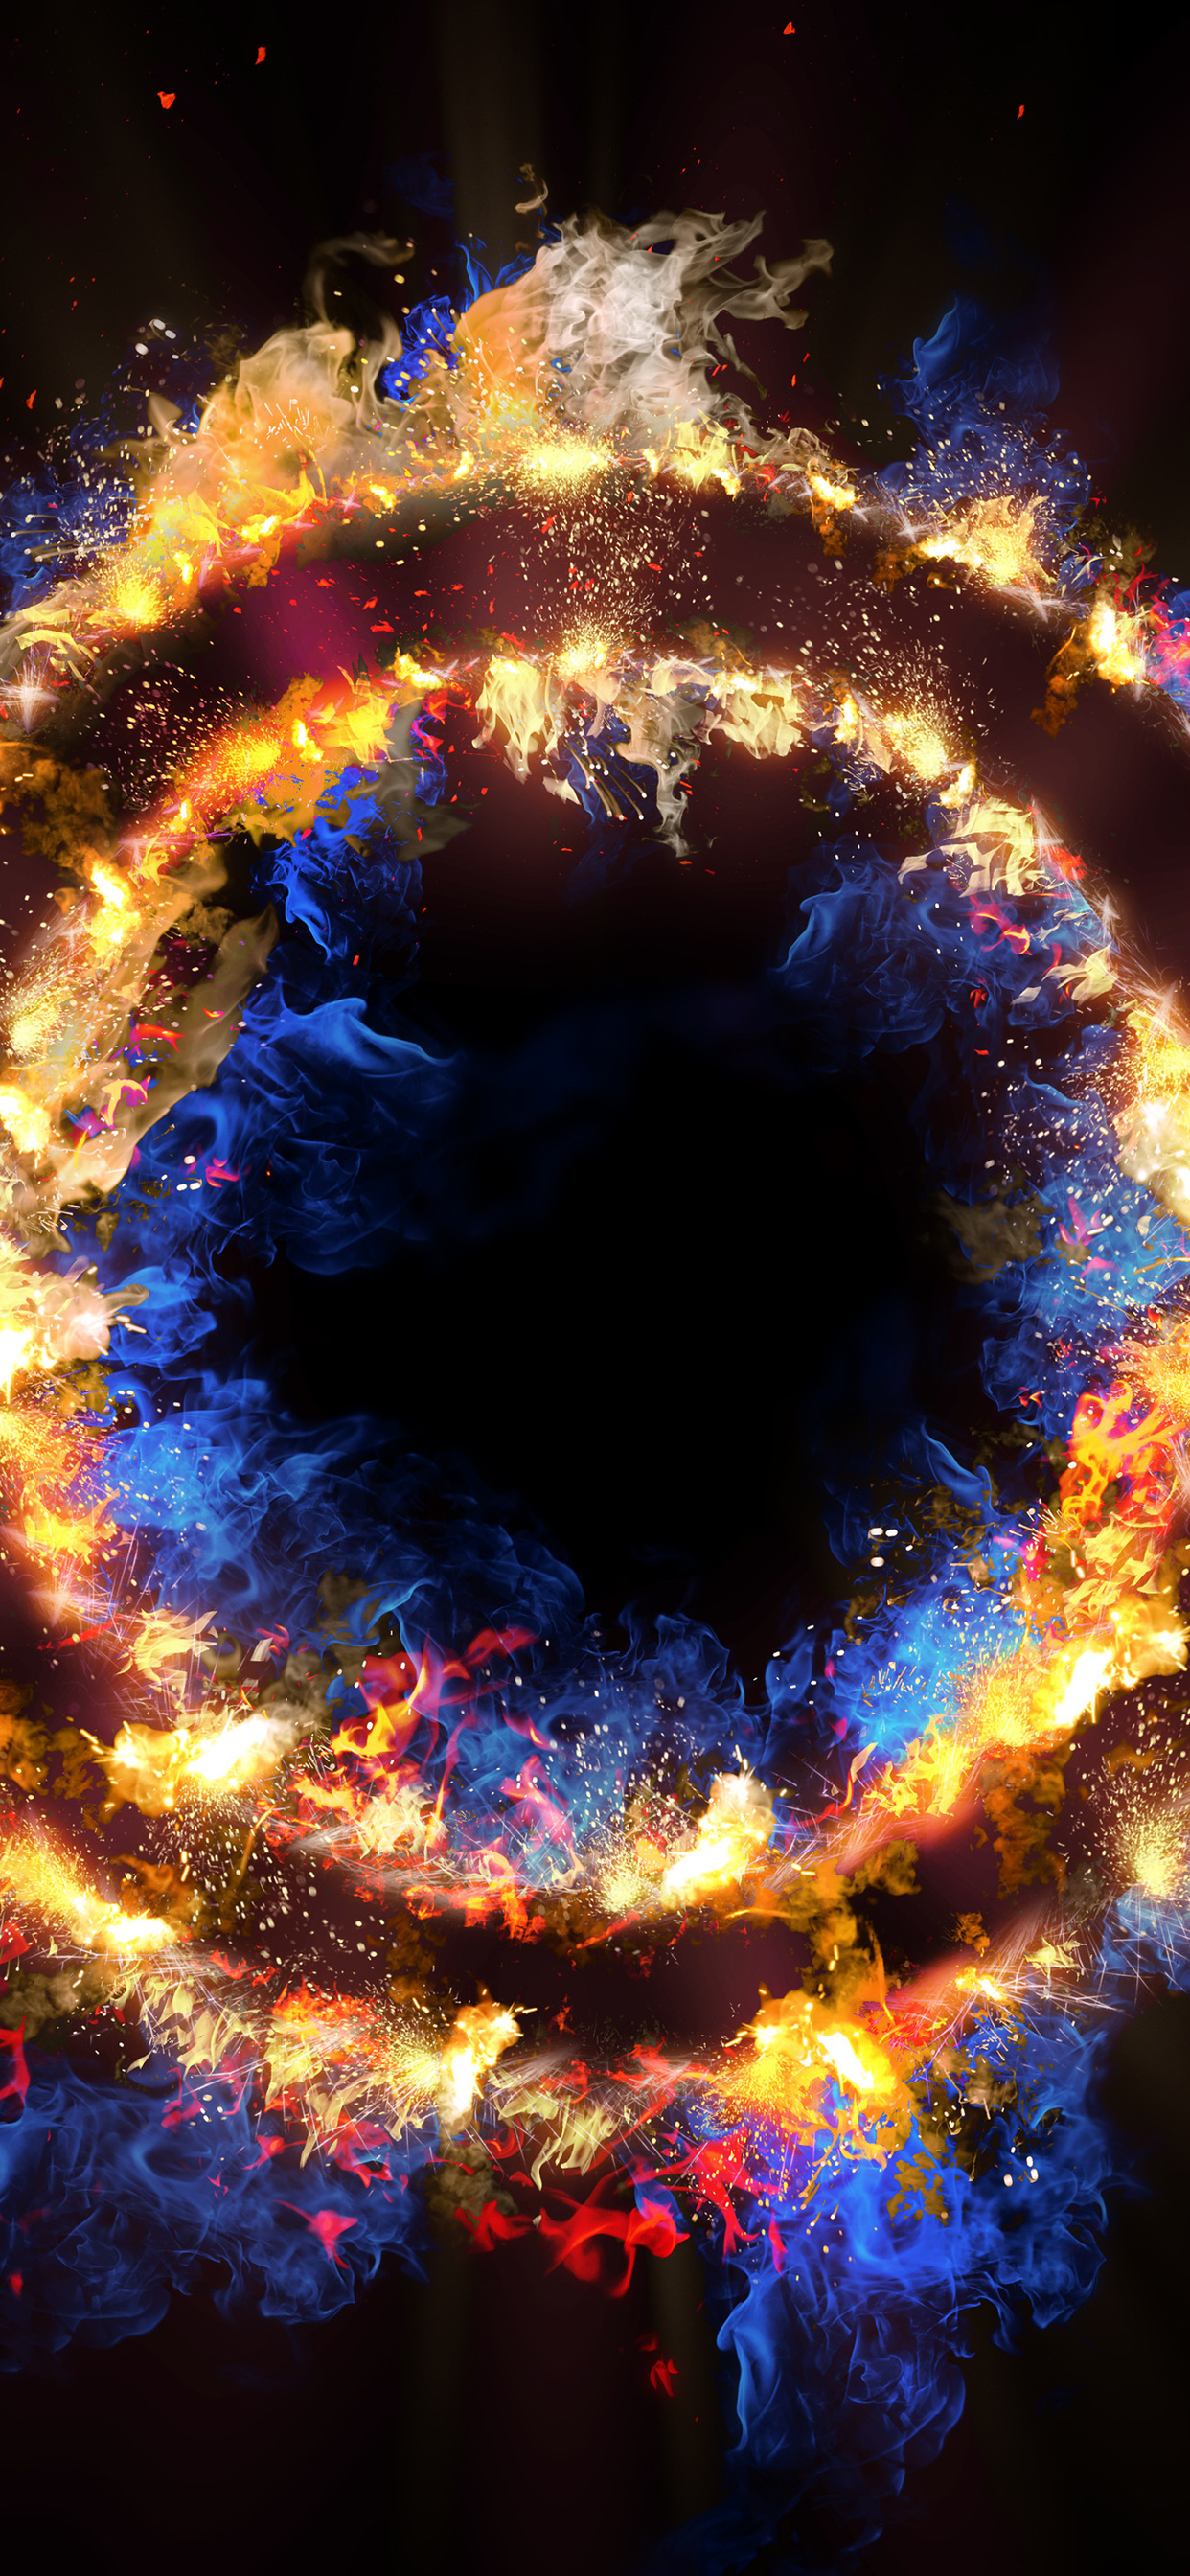 flame-circle-3d-abstract-5k-eg.jpg